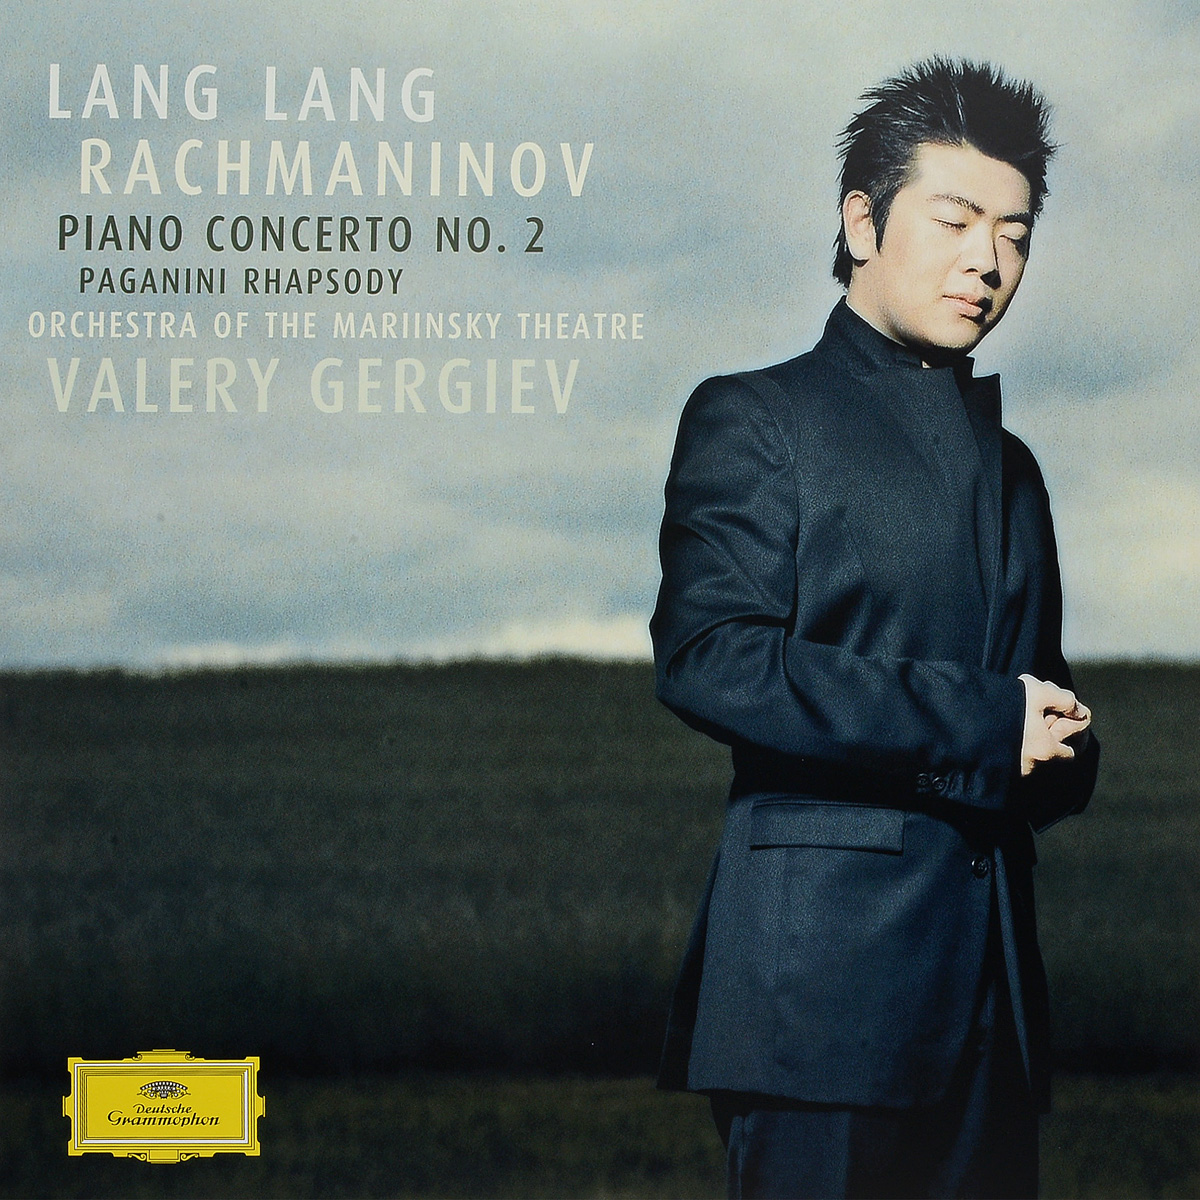 Rachmaninov. Lang Lang, Orchestra Of The Mariinsky Theatre, Valery Gergiev. Piano Concerto No. 2 / Paganini Rhapsody (2 LP) ланг ланг chicago symphony orchestra дэниэл баренбойм lang lang tchaikovsky mendelssohn first piano concertos lp